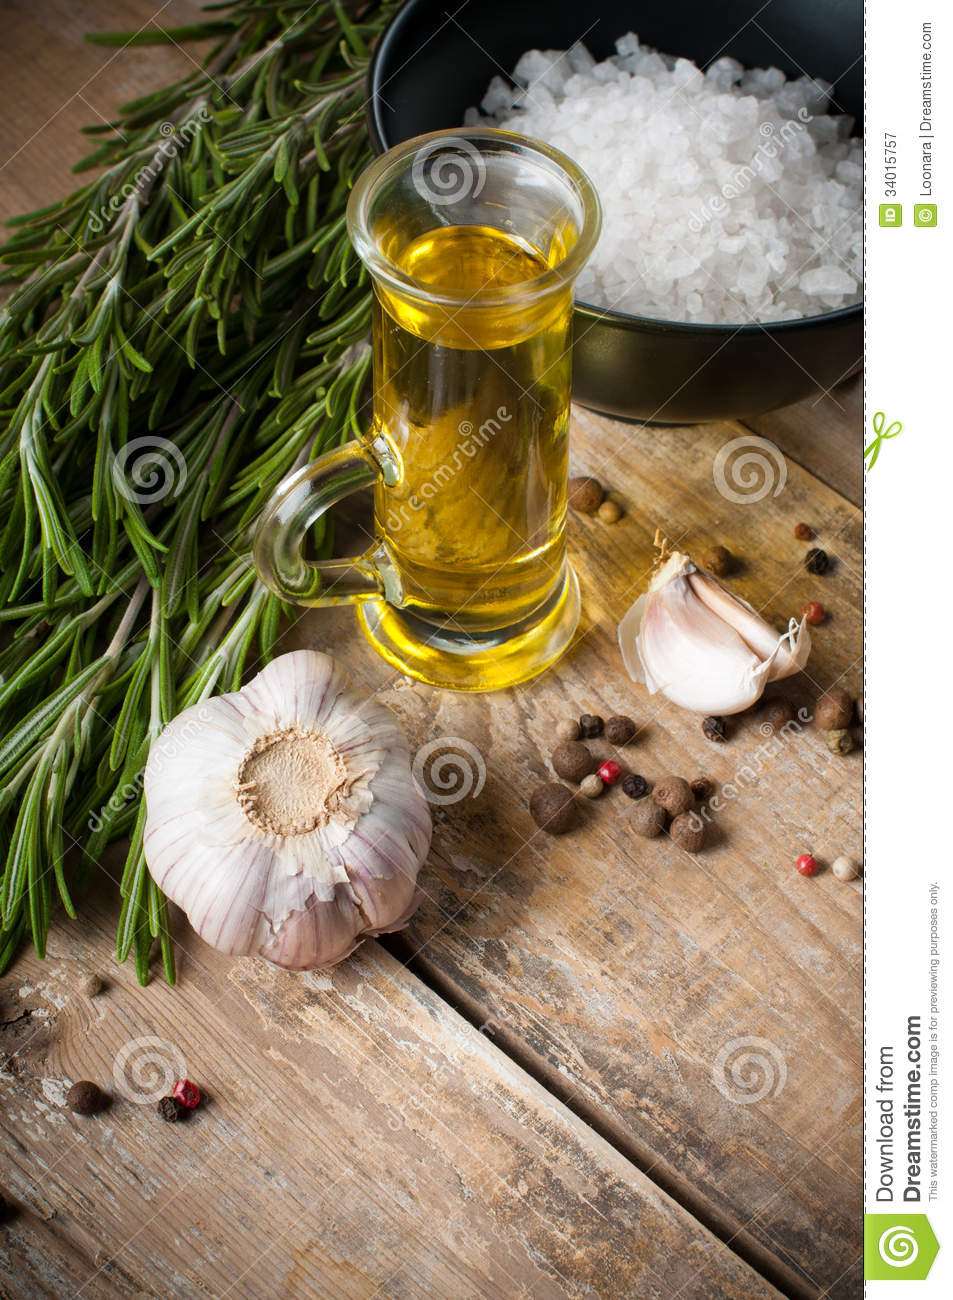 Rustic Kitchen Background Royalty Free Stock Photography